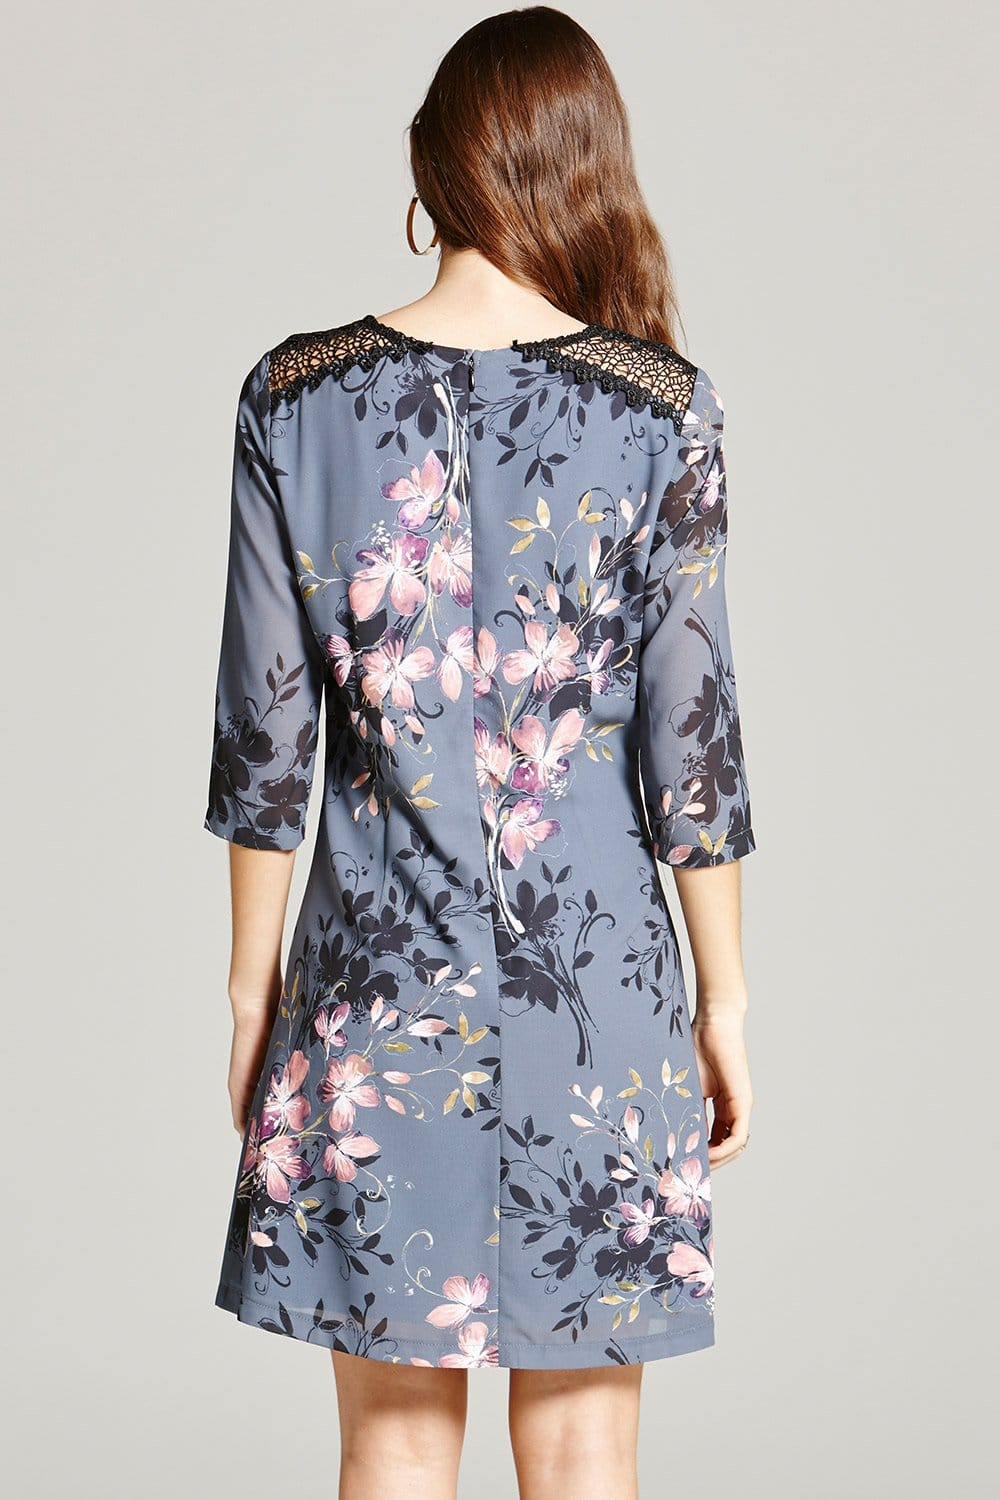 Grey Floral Print And Lace Tunic Dress From Little